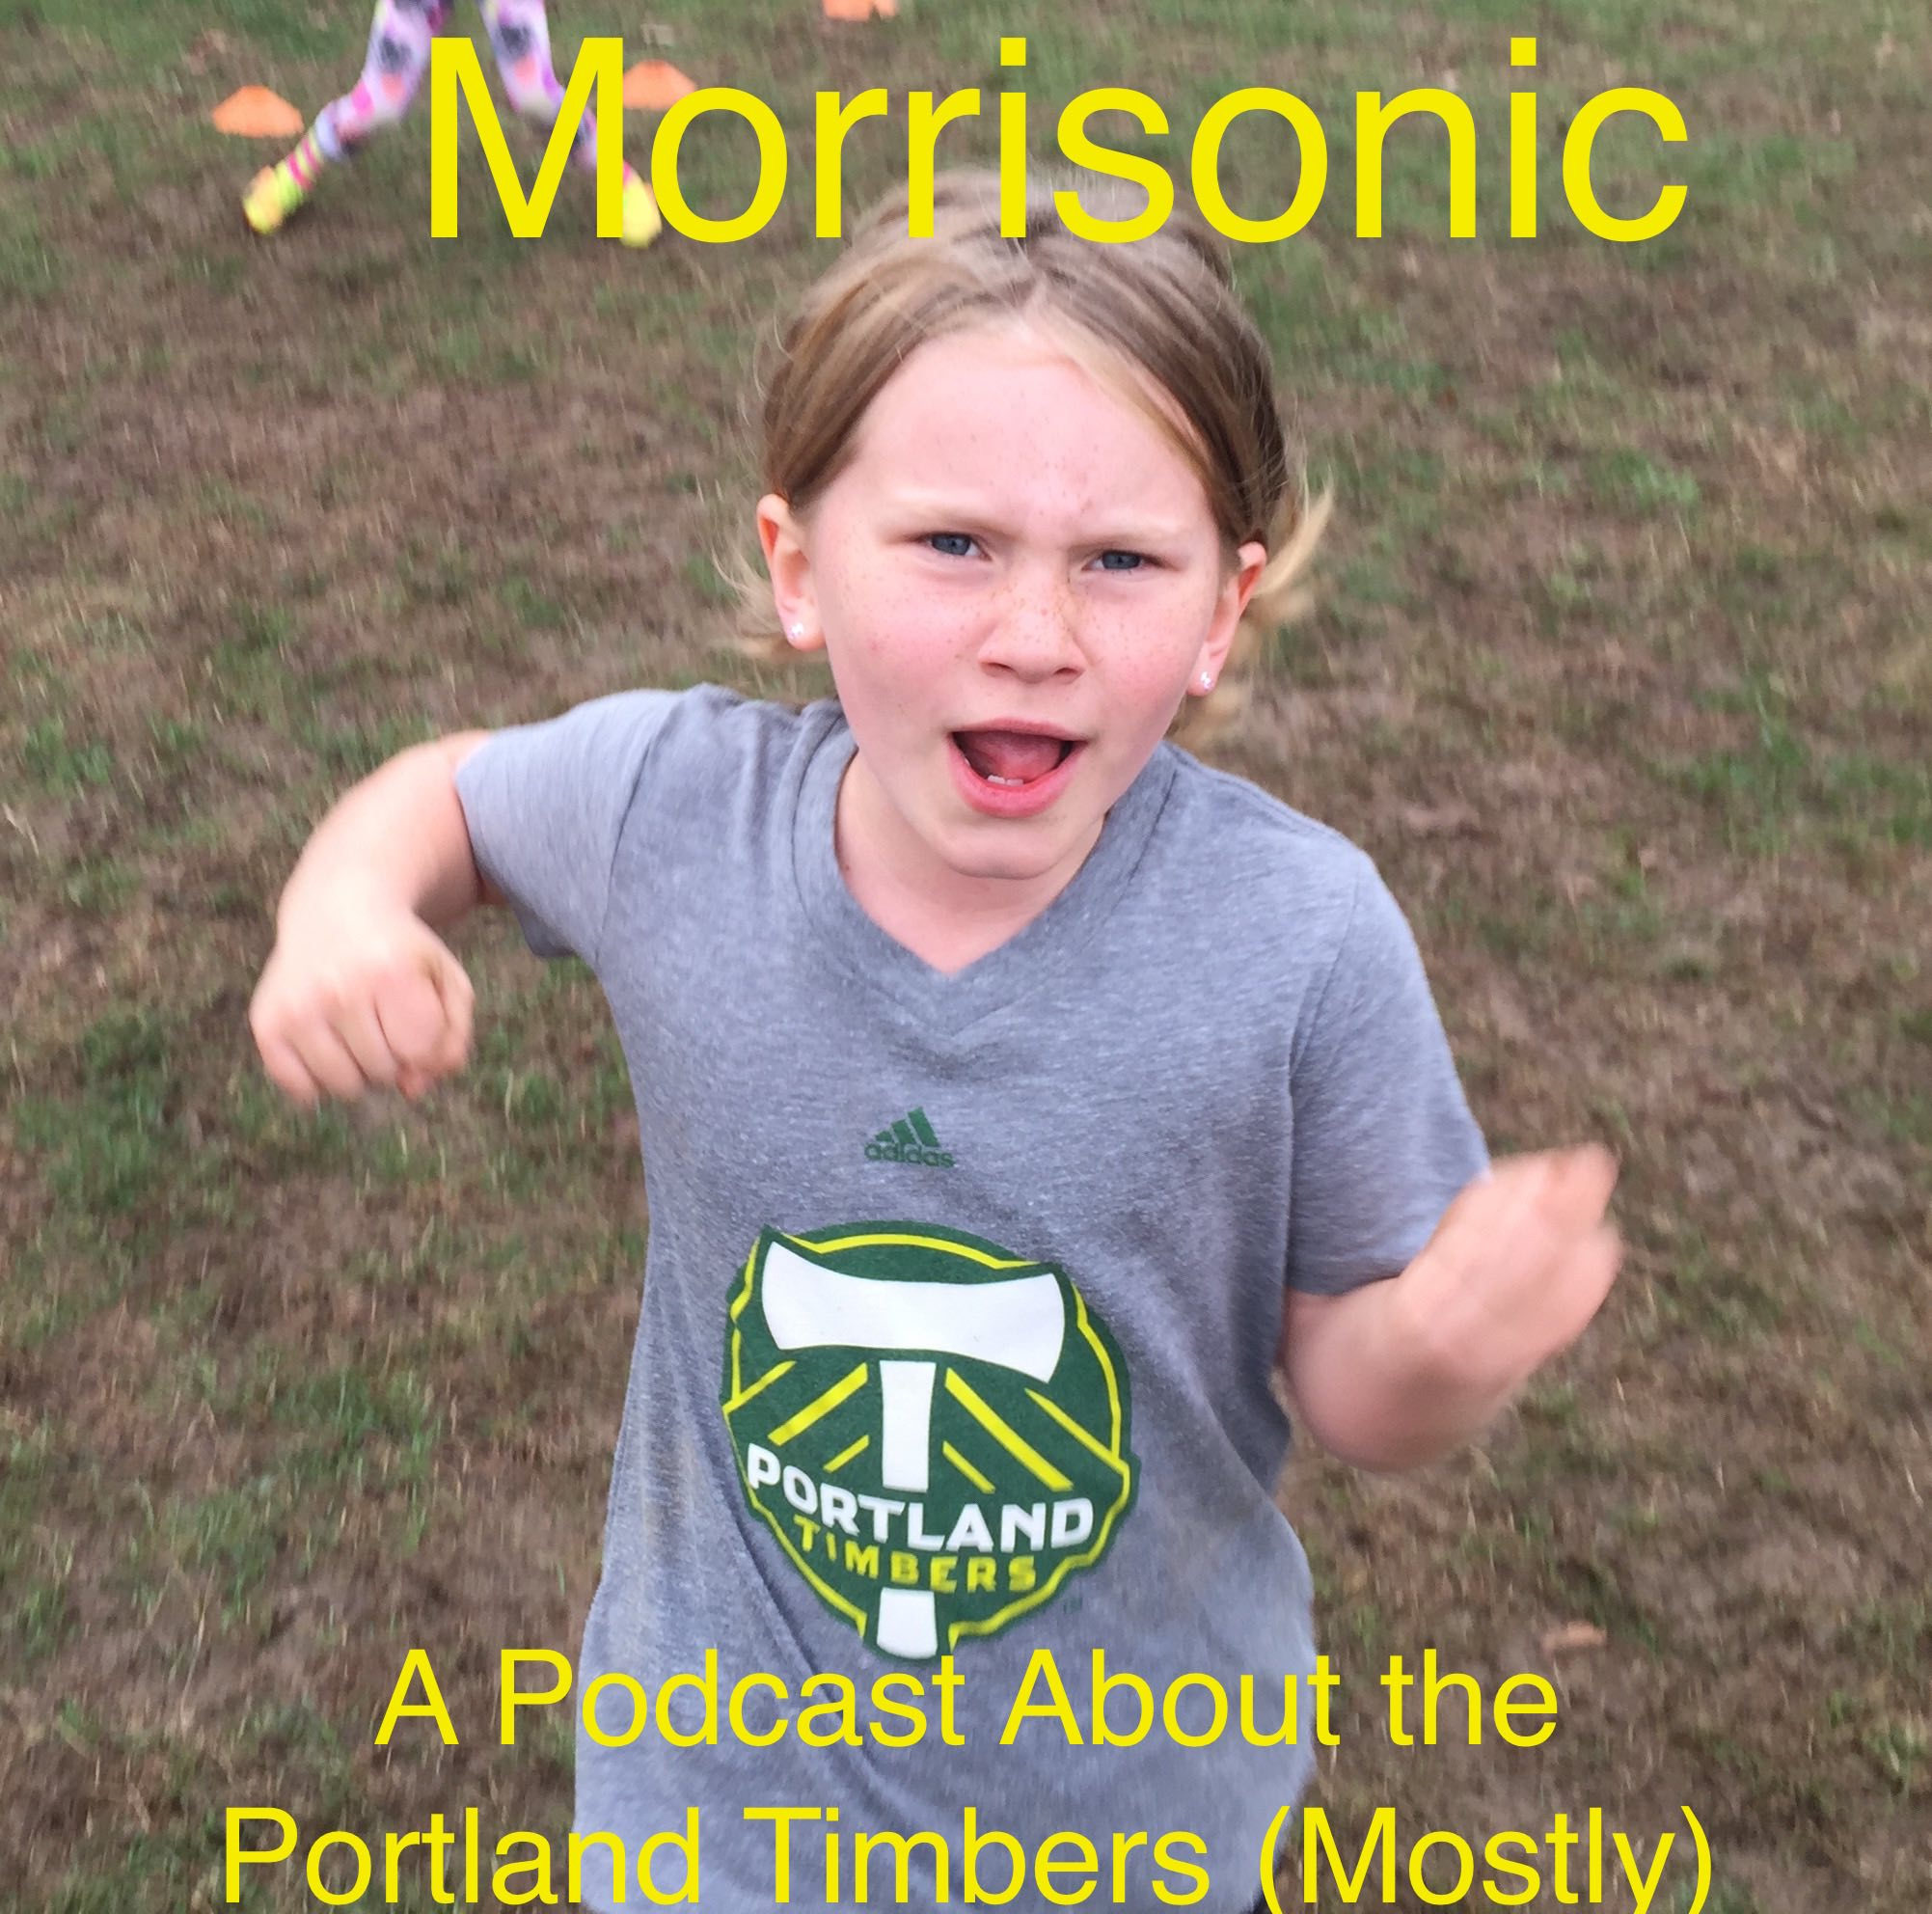 Morrisonic: A Podcast About the Portland Timbers (Mostly) show art